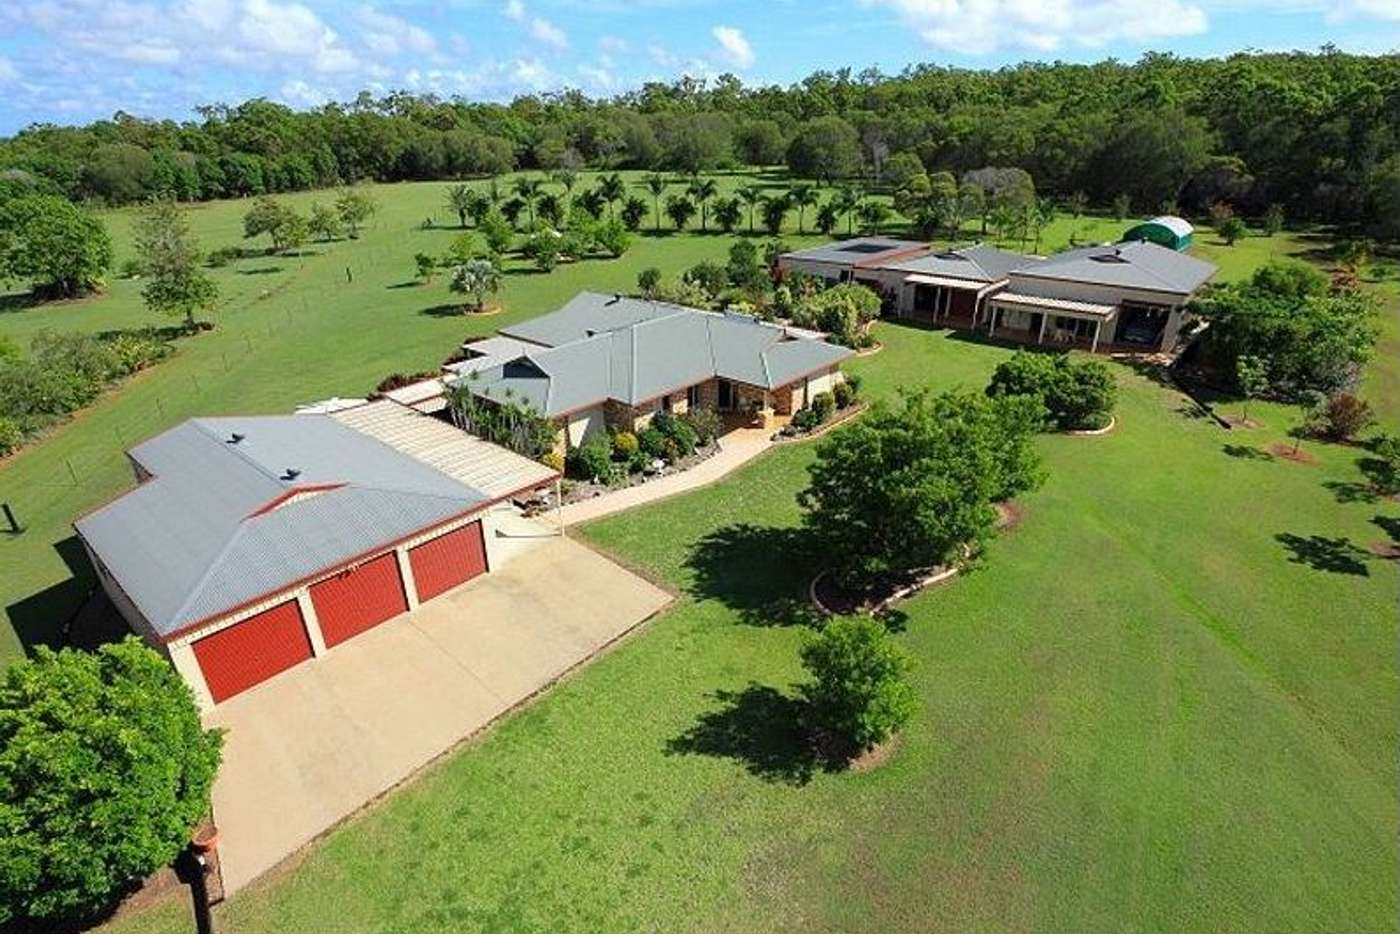 Main view of Homely house listing, 34 Newfarm Place, Takura QLD 4655